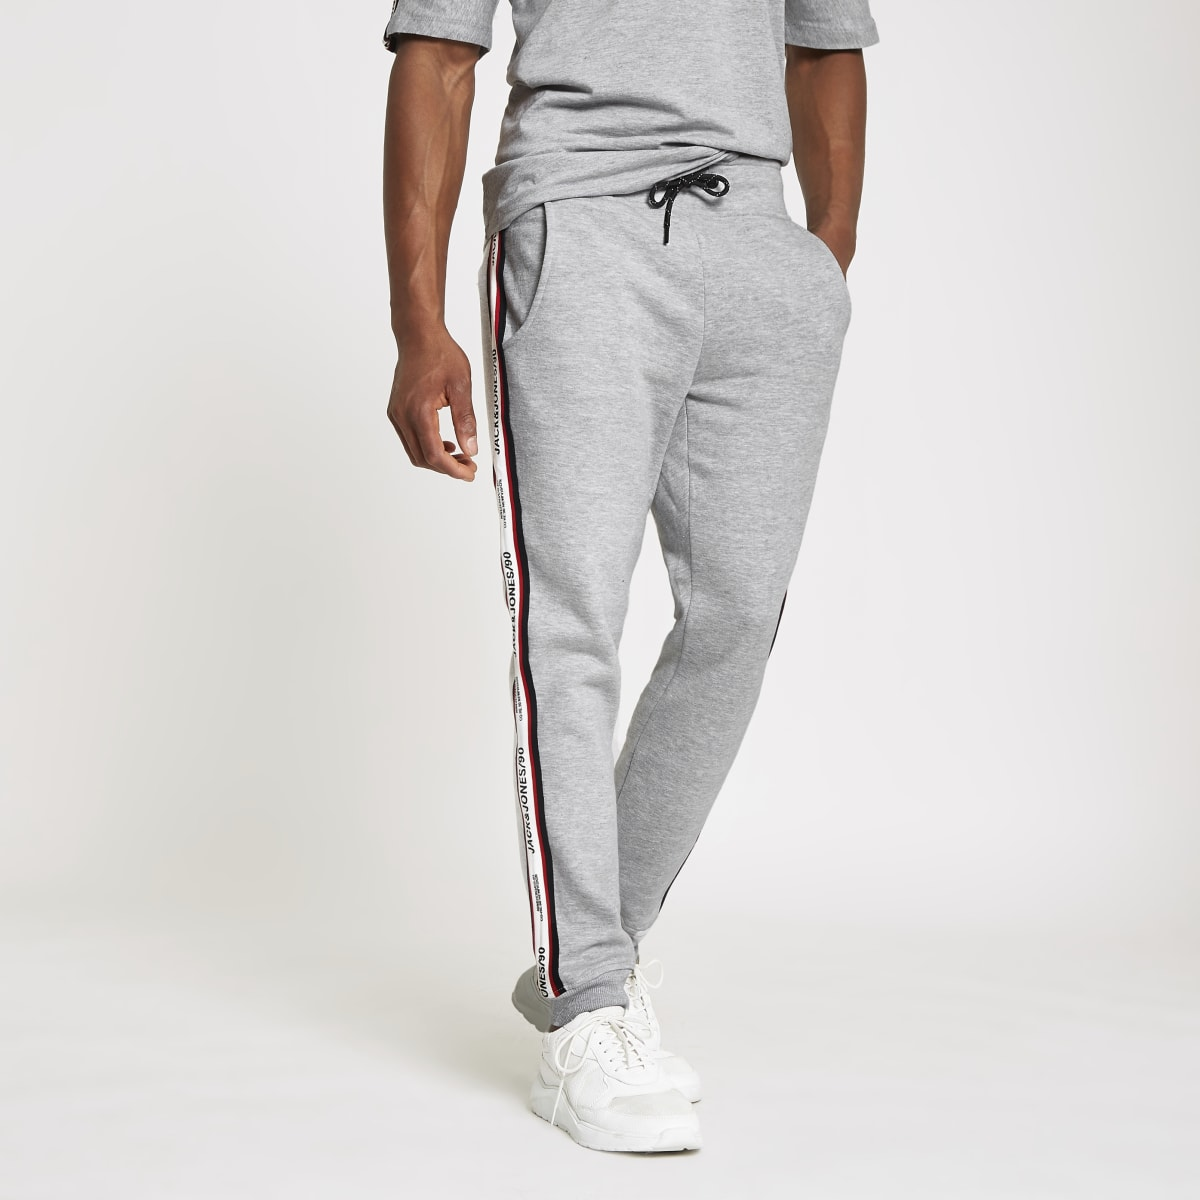 Jack & Jones grey tape joggers